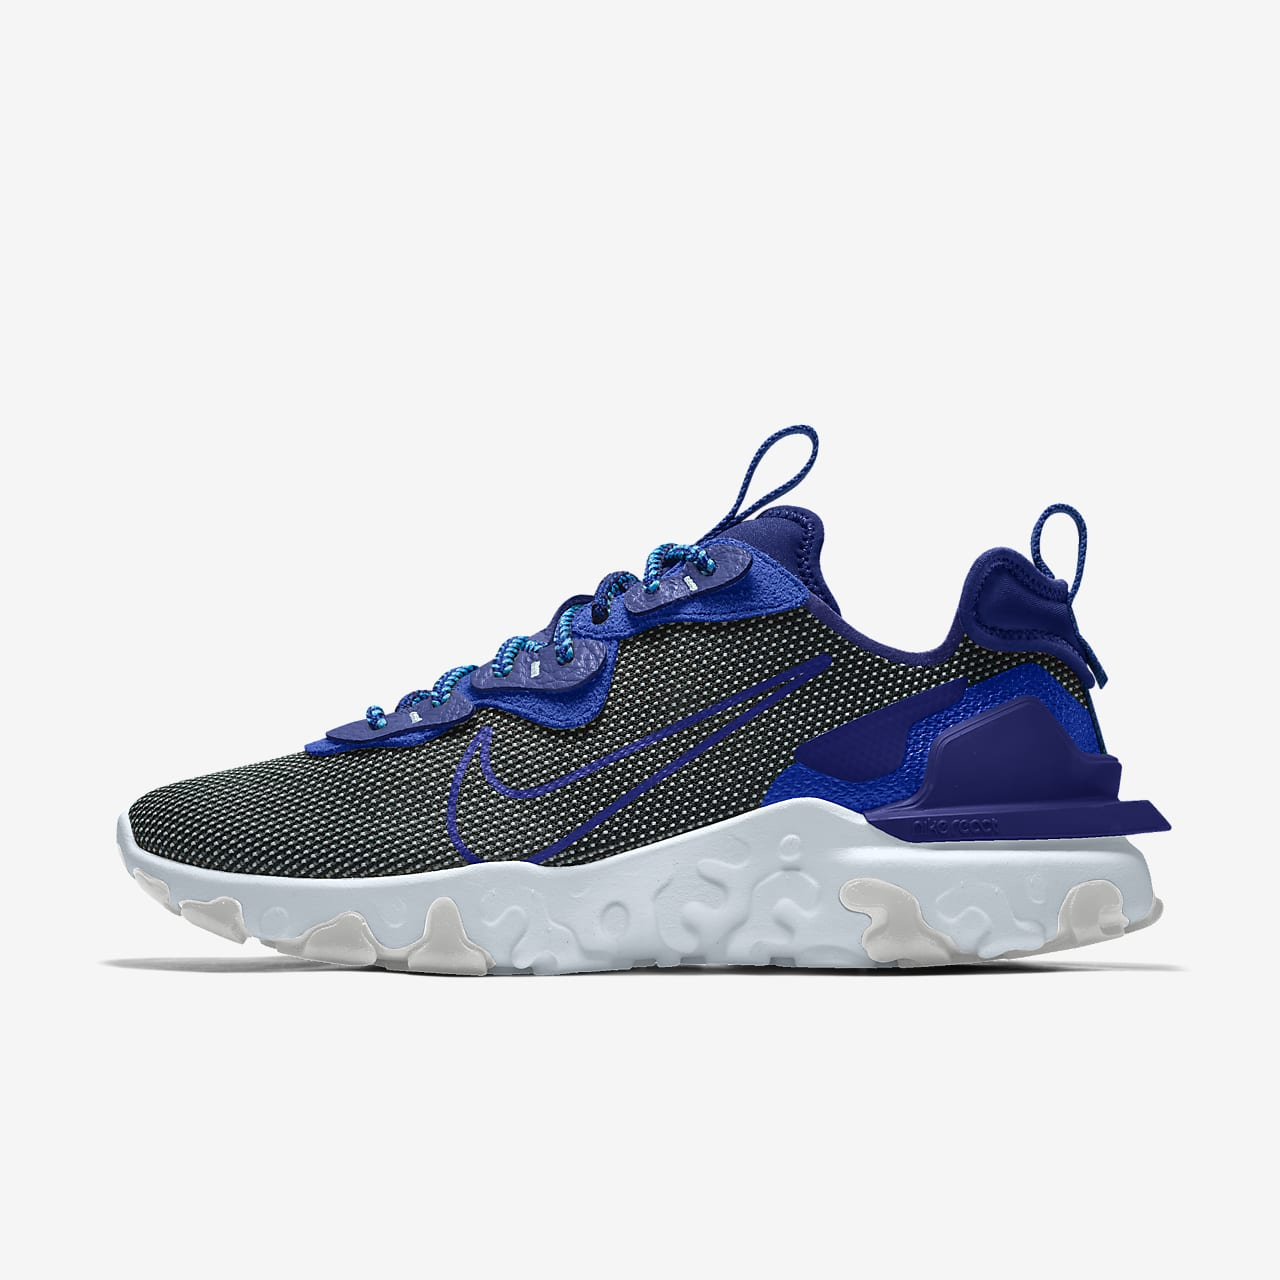 Nike React Vision By You Custom Men's Lifestyle Shoe